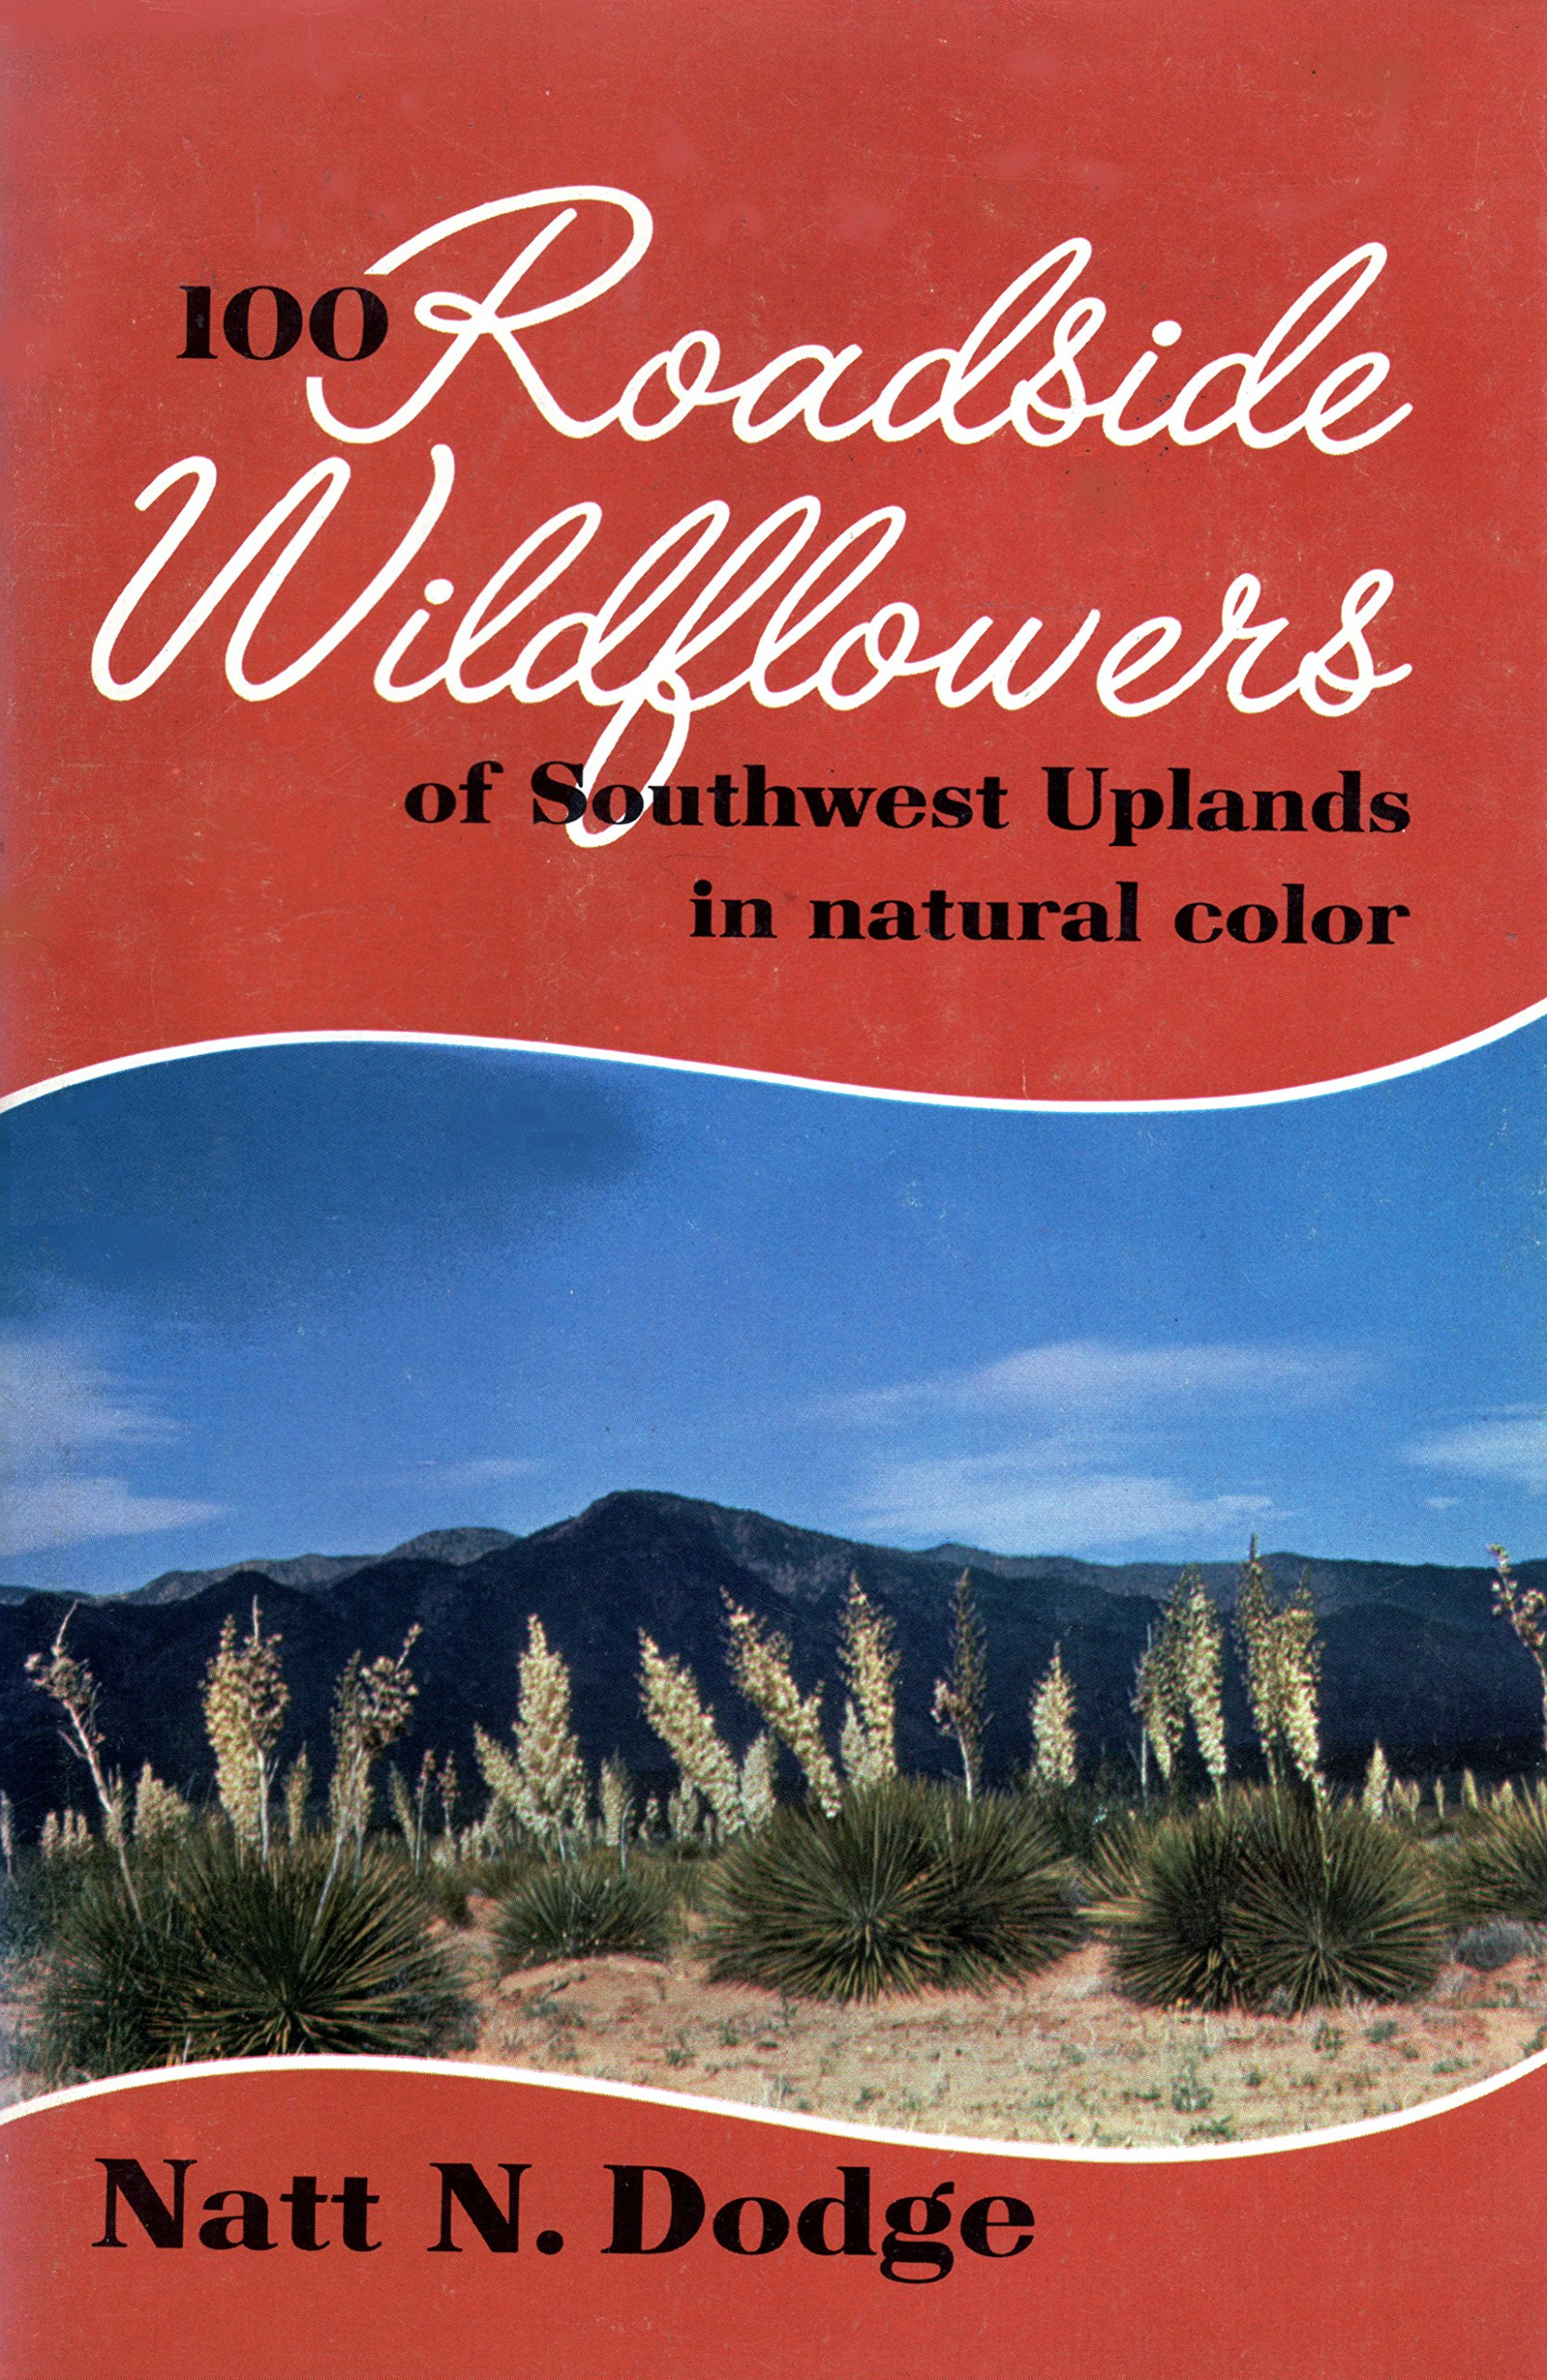 100 Roadside Wildflowers of Southwest Uplands in Natural Color (Southwestern Monuments Association Popular Series No. 12)